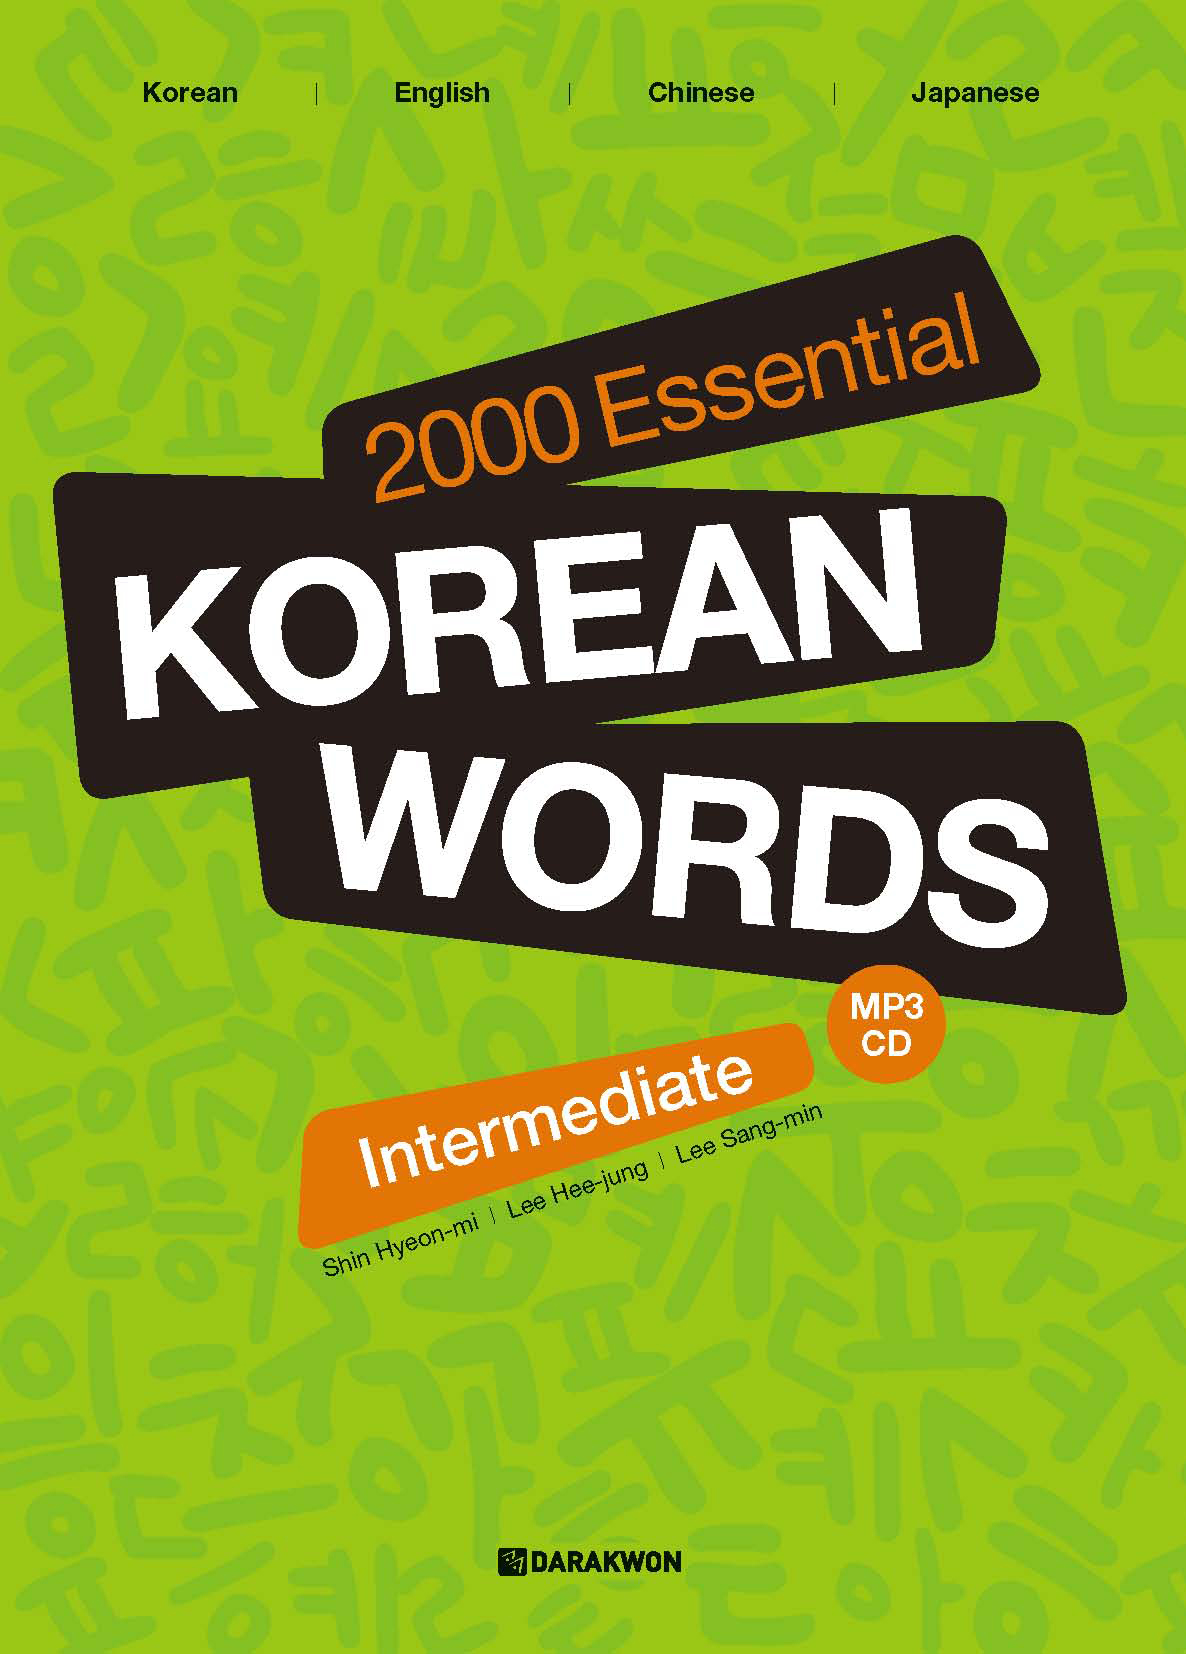 [2000 Essential Korean Words] 2000 Essential Korean Words Intermediate